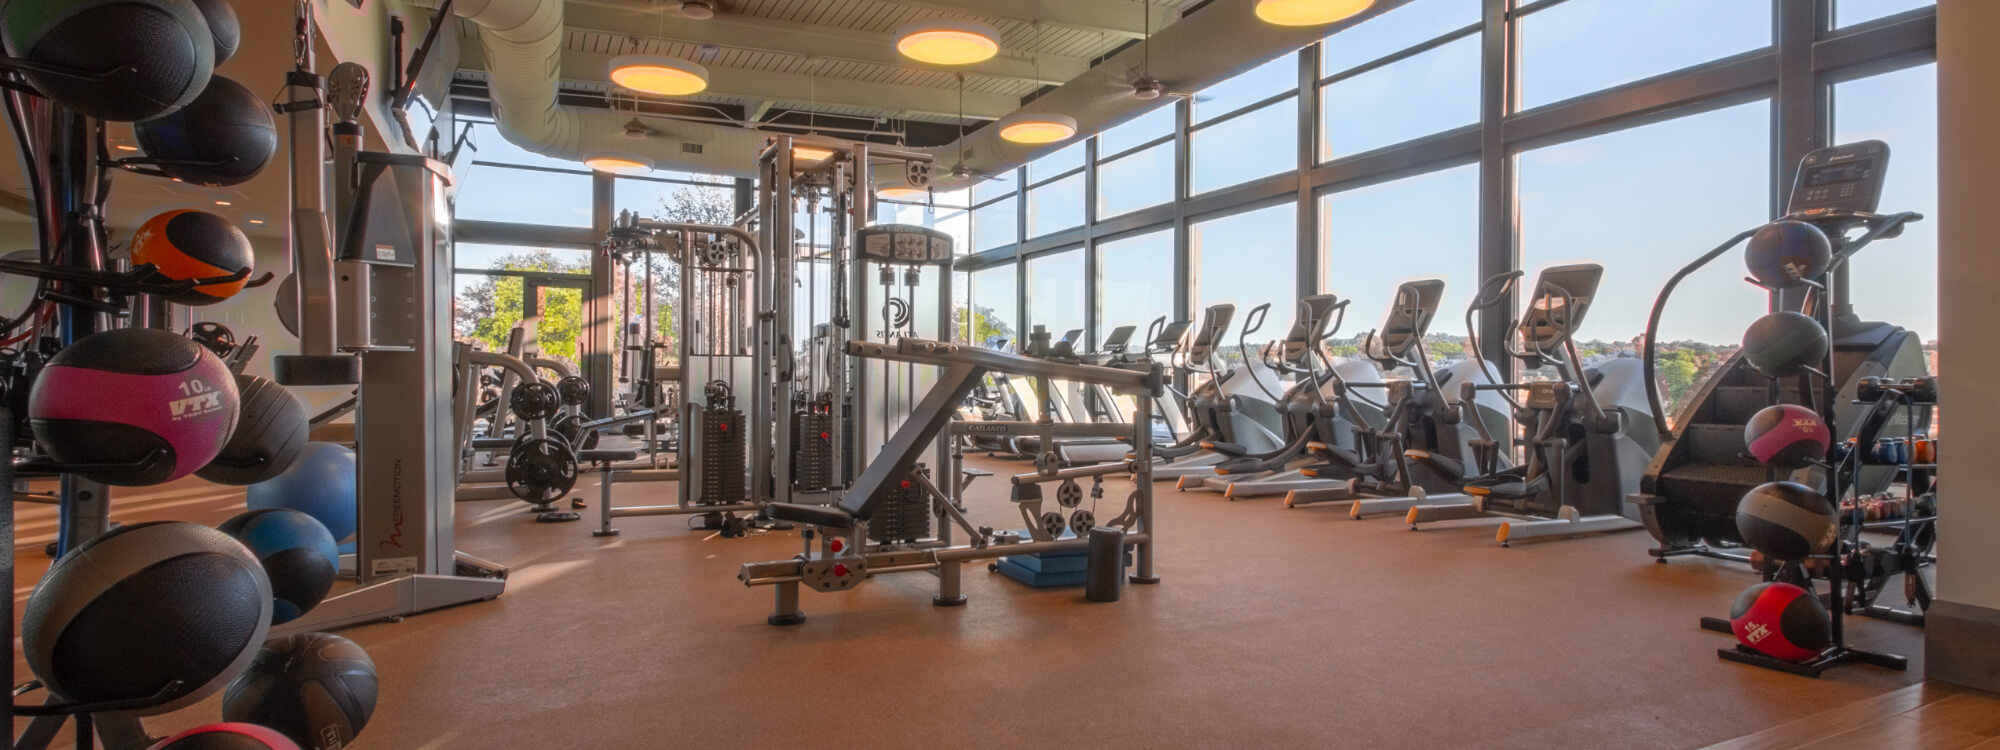 Strength and Cardio Fitness Facility